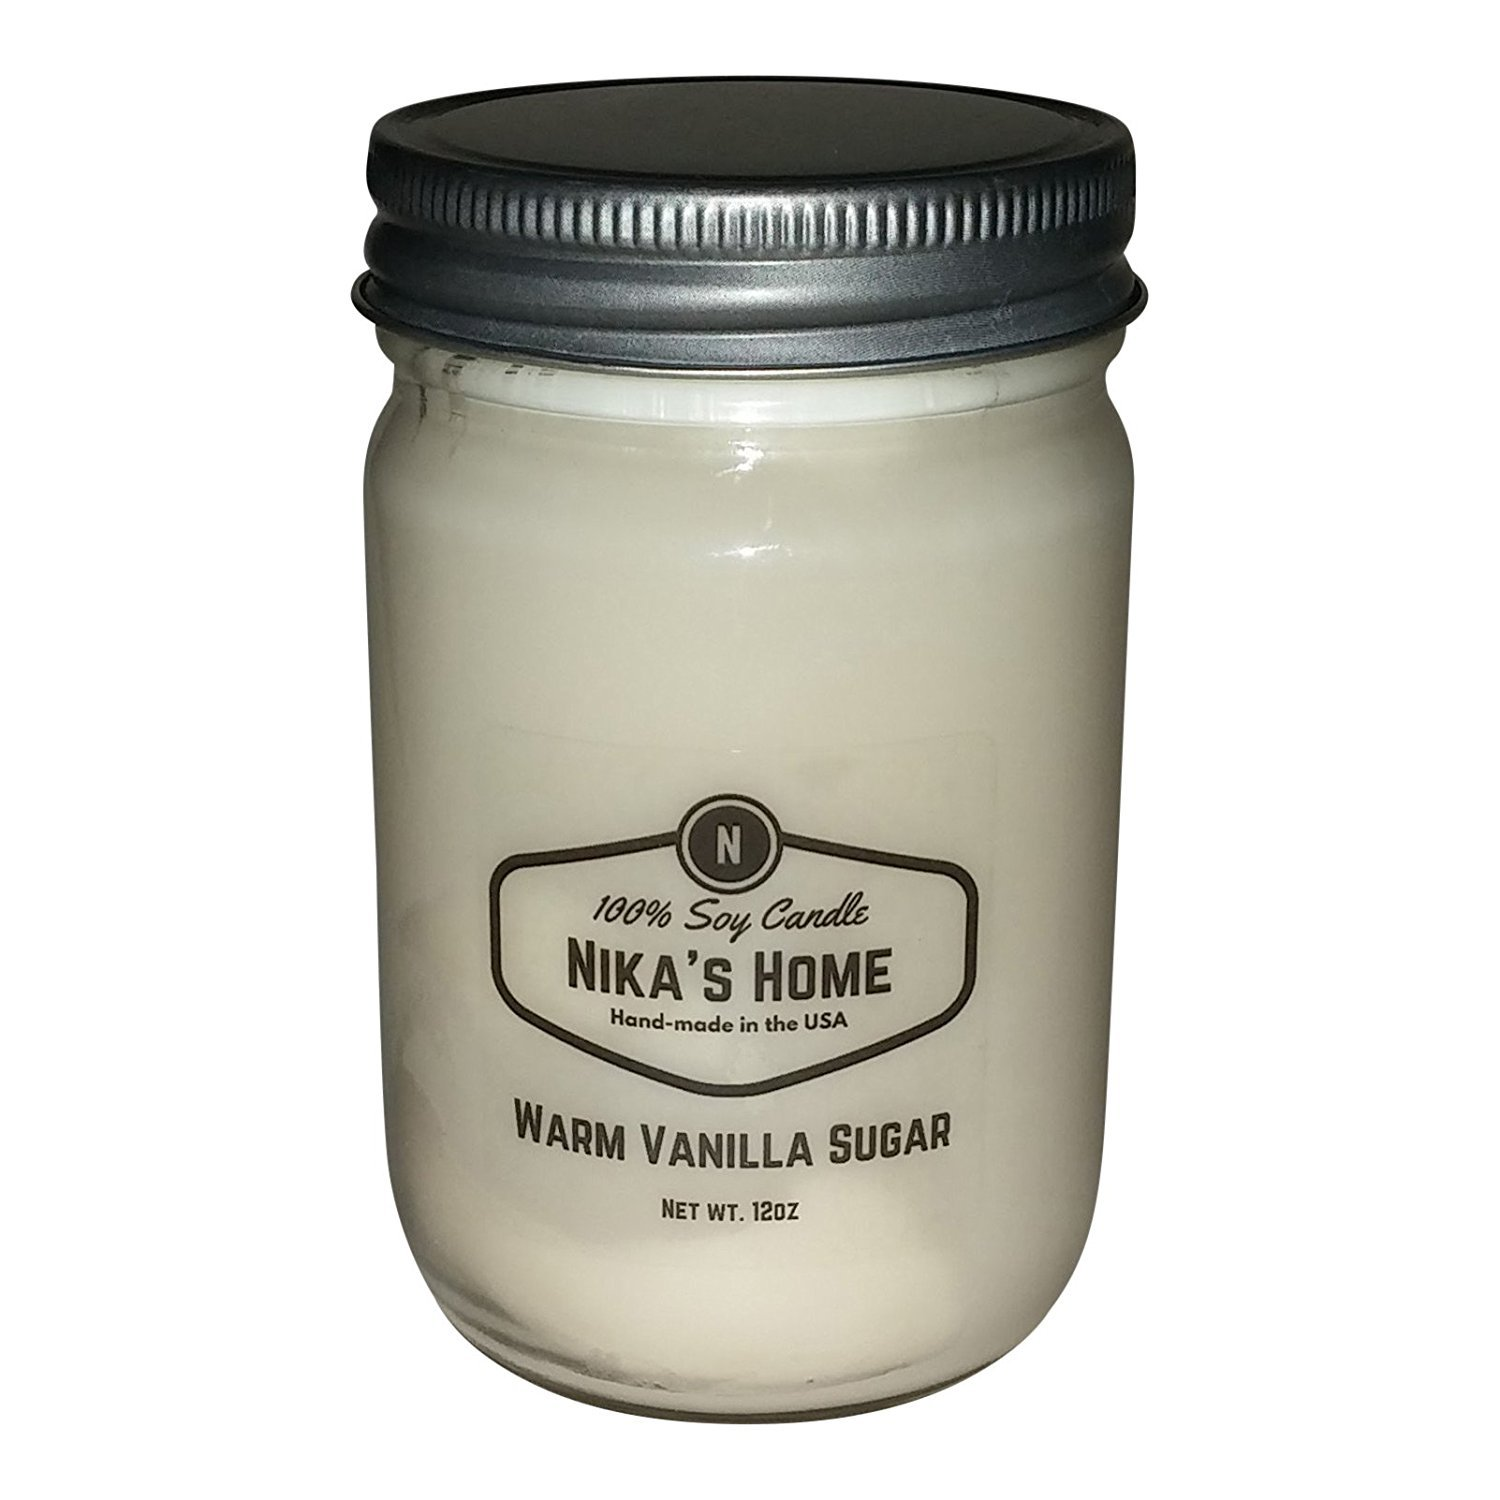 Nika's Home Warm Vanilla Sugar Soy Candle - 12oz Mason Nika' s Home